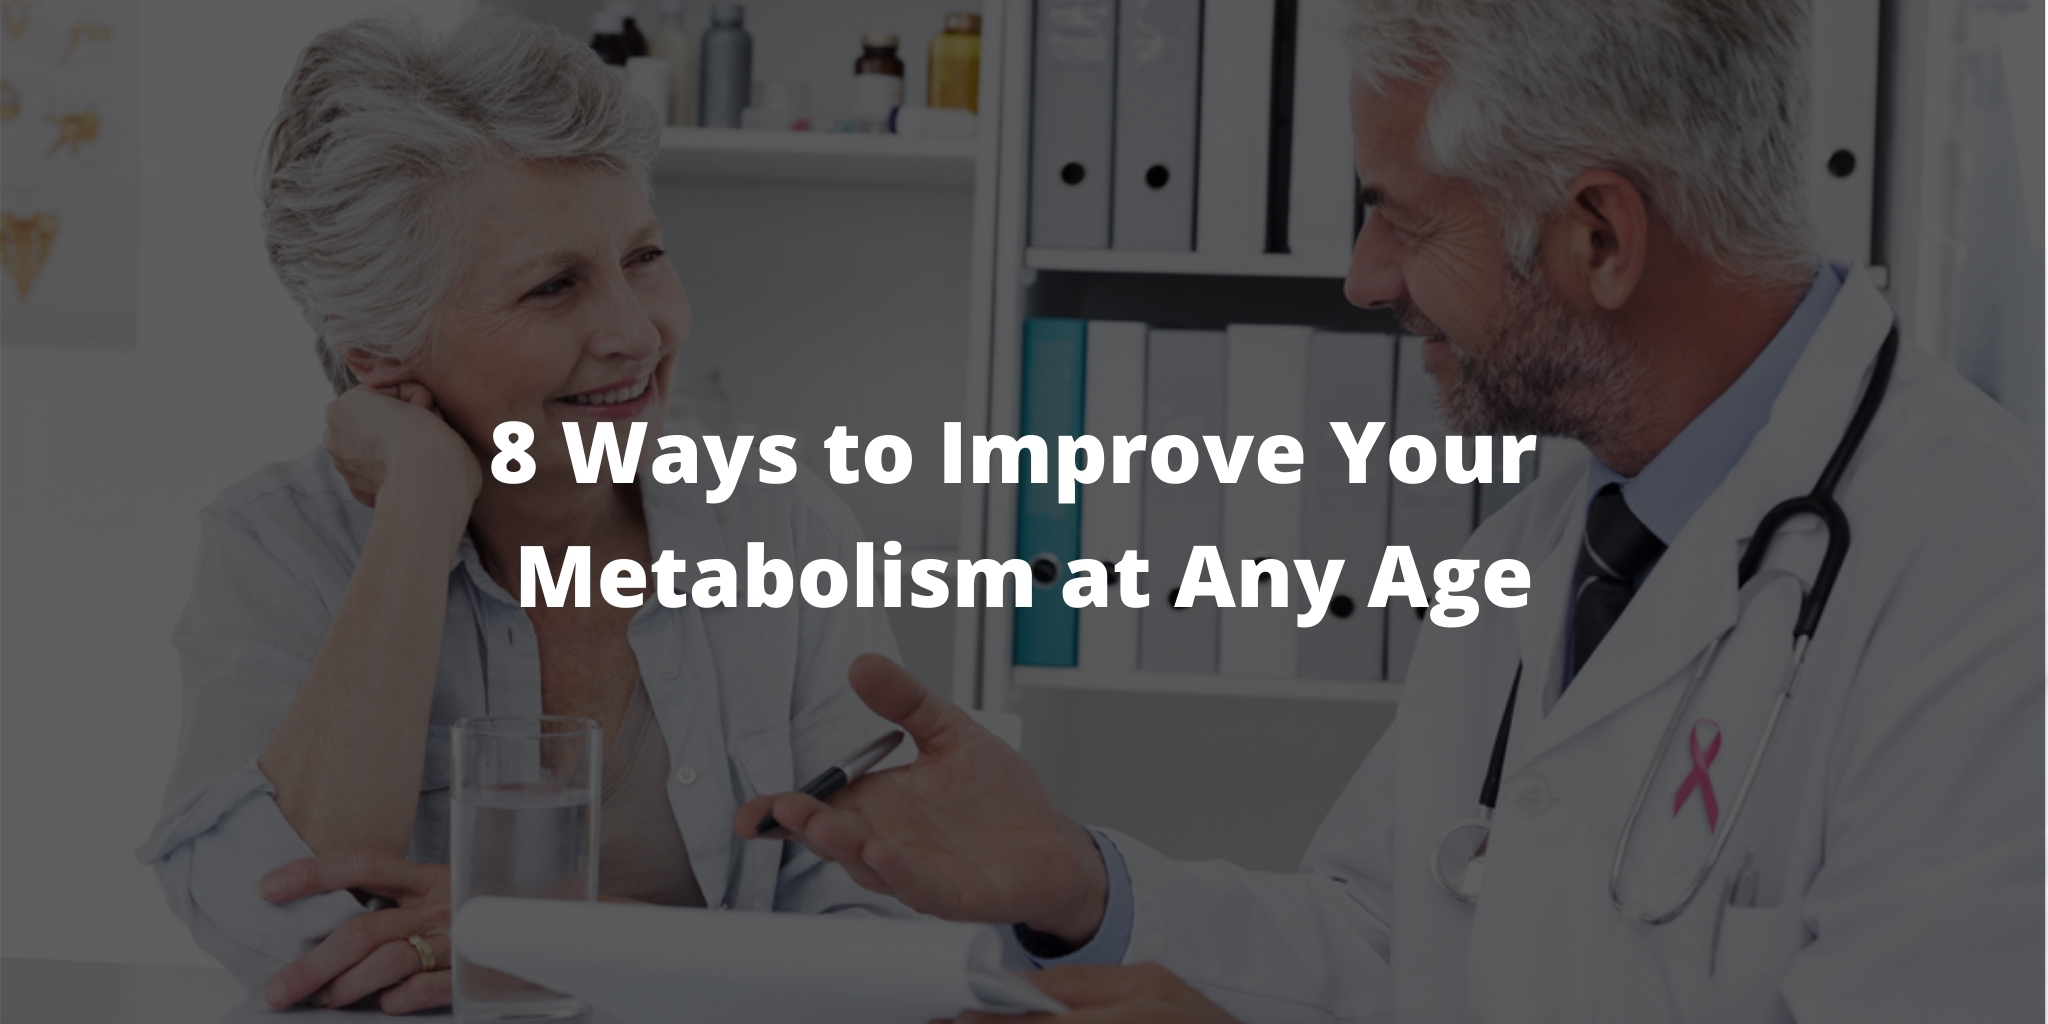 8 Ways to Improve Your Metabolism at Any Age